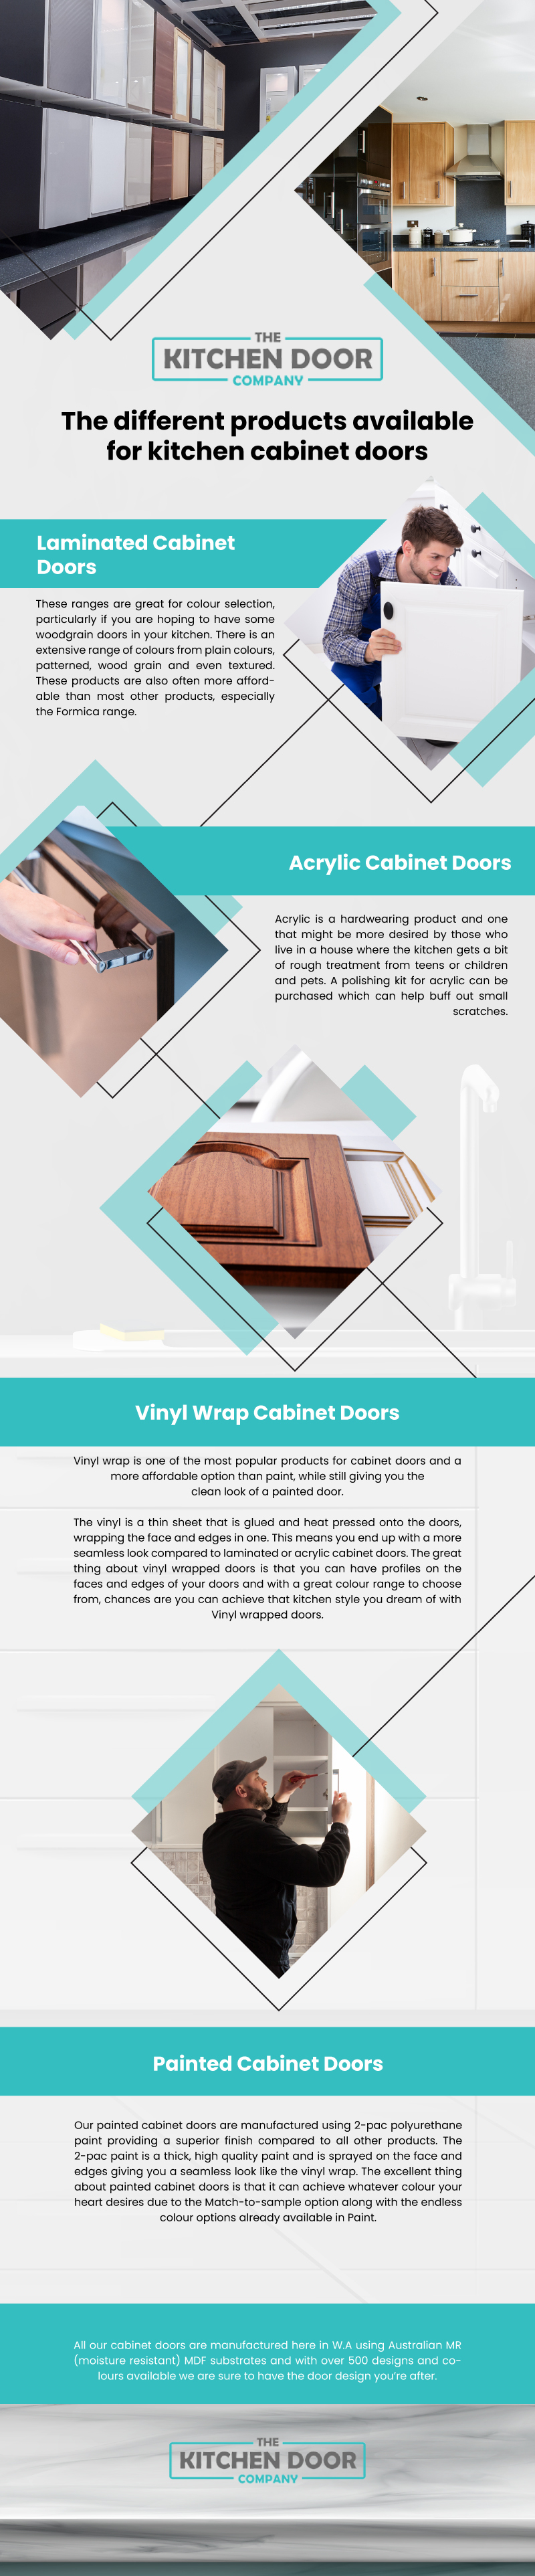 different-products-available-for-kitchen-cabinet-doors-infographic-plaza